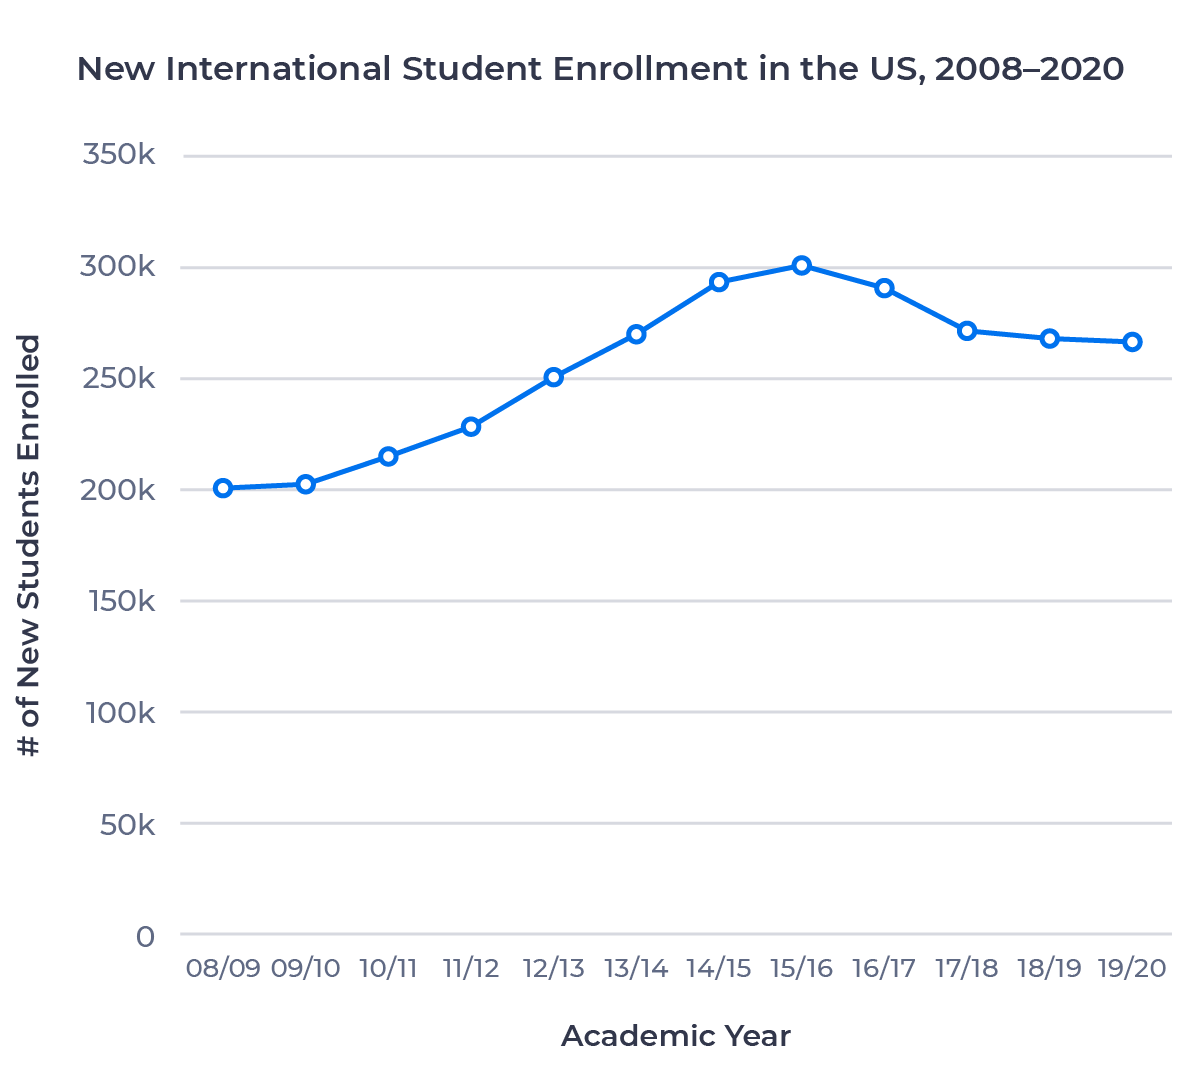 Line chart showing total new international student enrollment in the US from the 08/09 to 19/20 academic years. Enrollment grew between 08/09 and 15/16 before declining over the following four years.